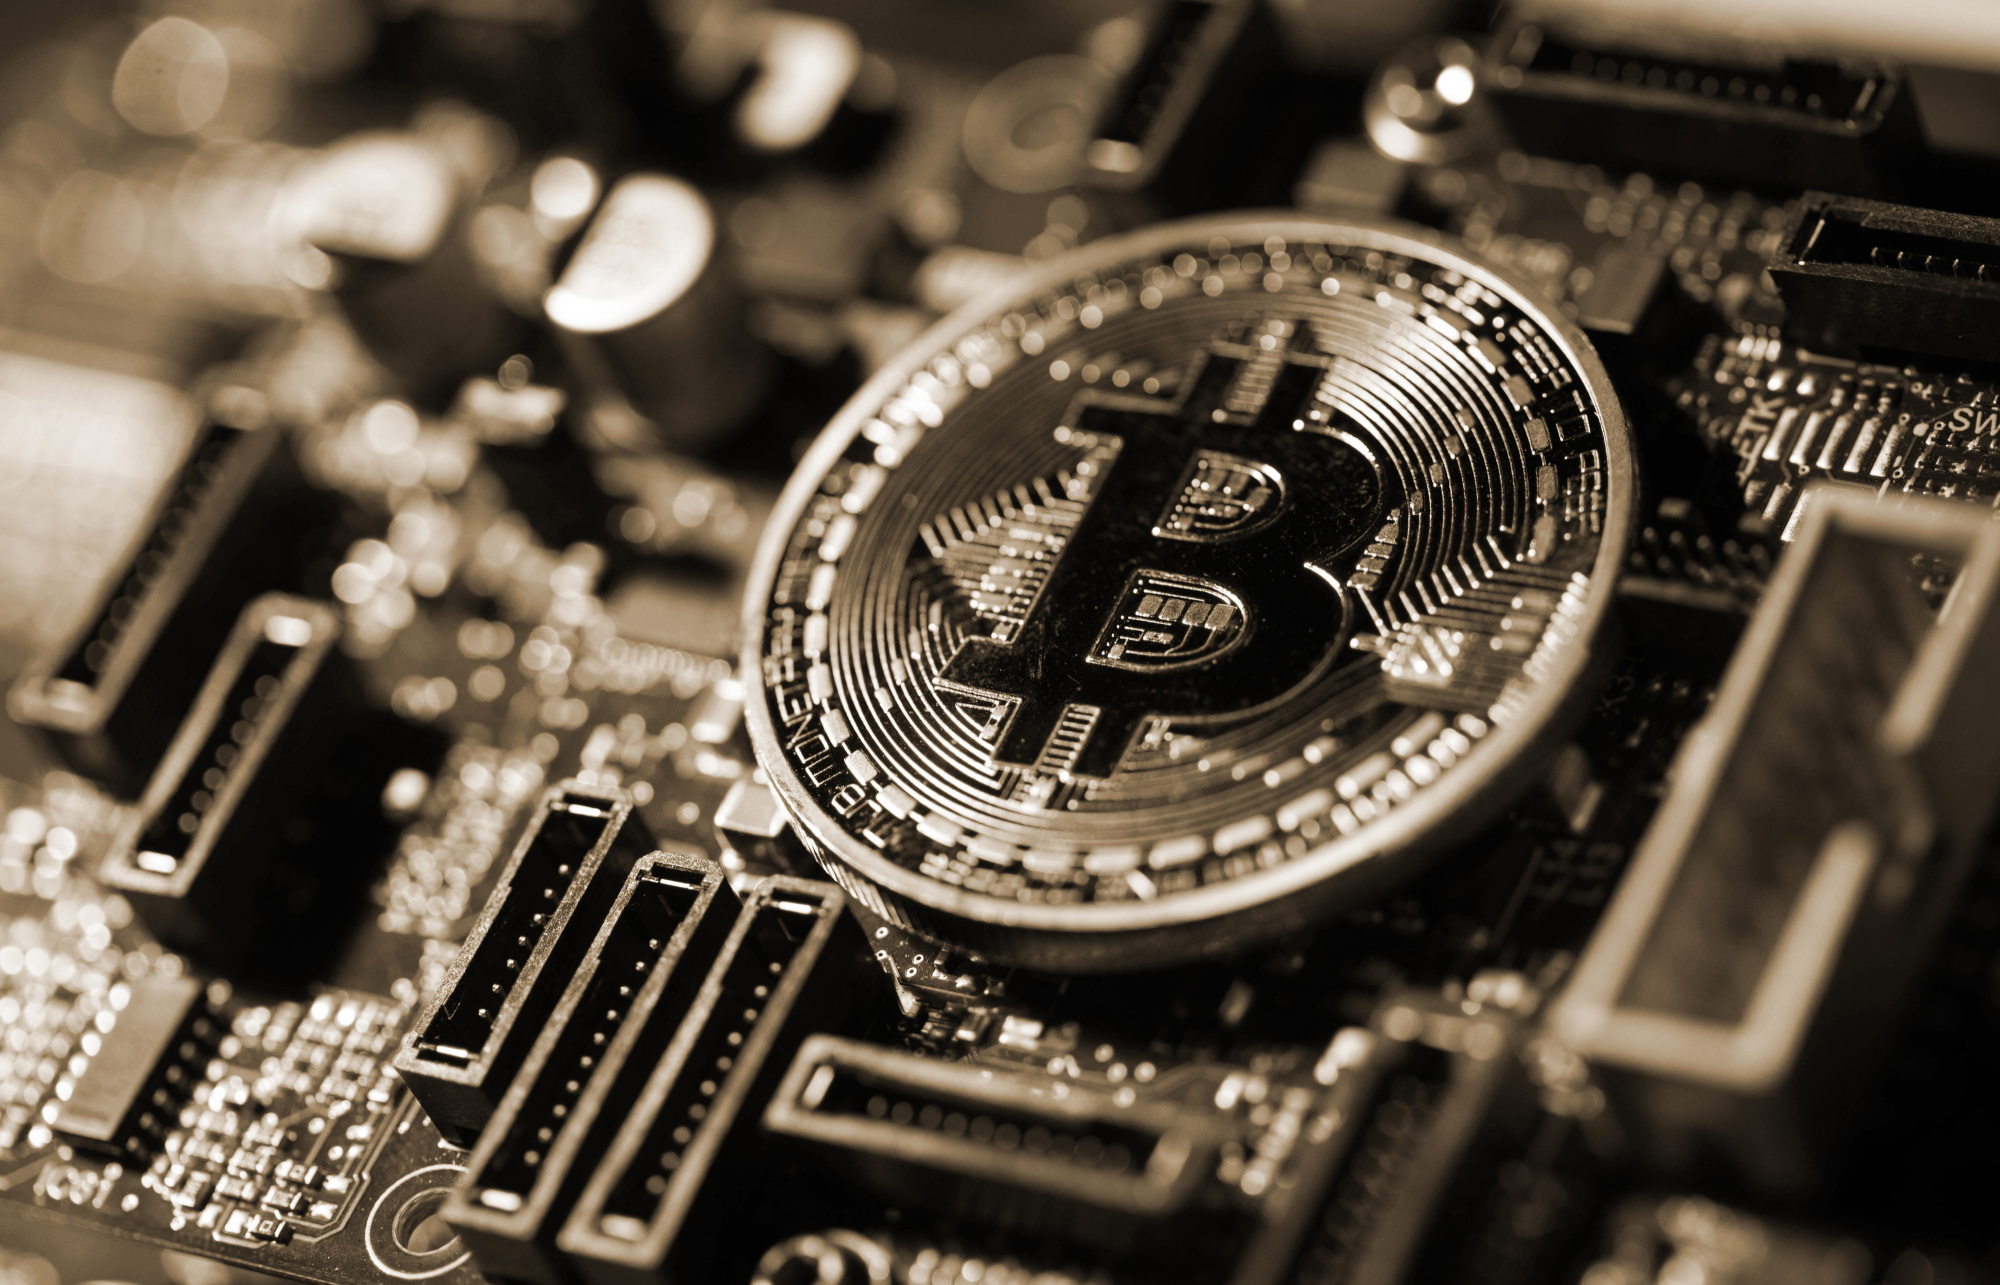 Suspected cases of money laundering linked to cryptocurrenciesin 2018 jumped tenfold from a year before, NPA figures show. | BLOOMBERG